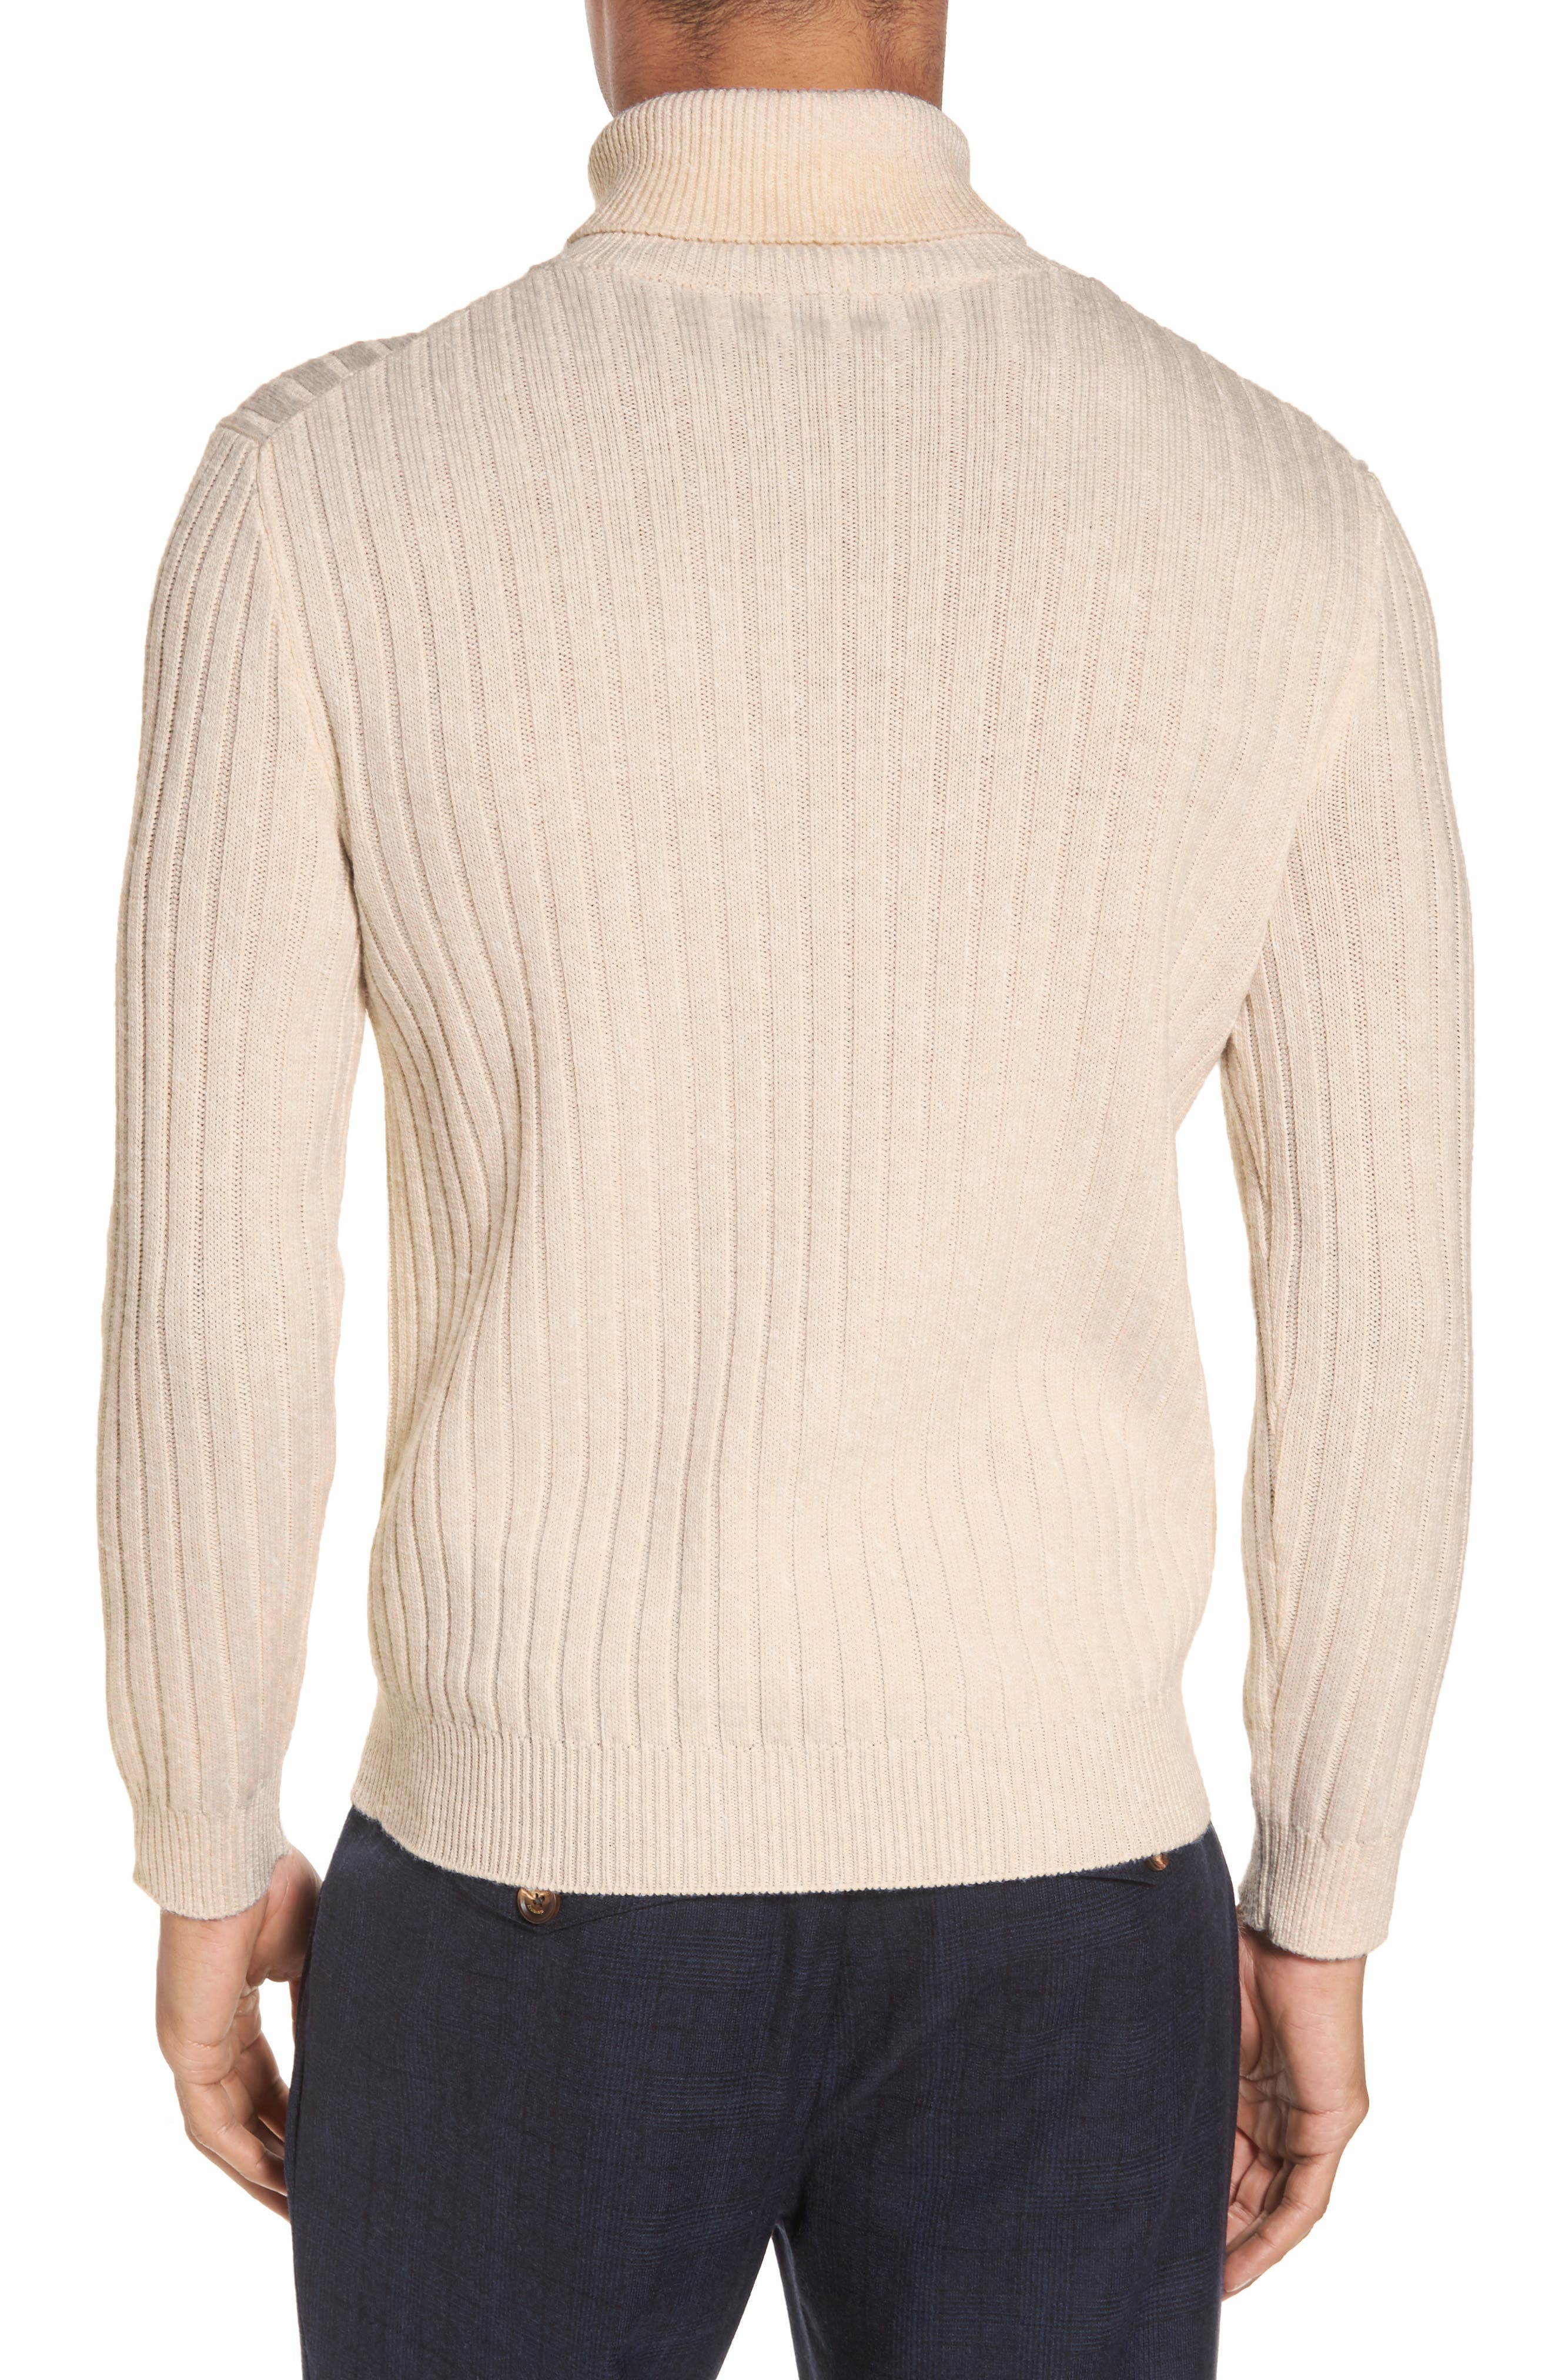 Ribbed Turtleneck Wool Sweater,                             Alternate thumbnail 3, color,                             Cream